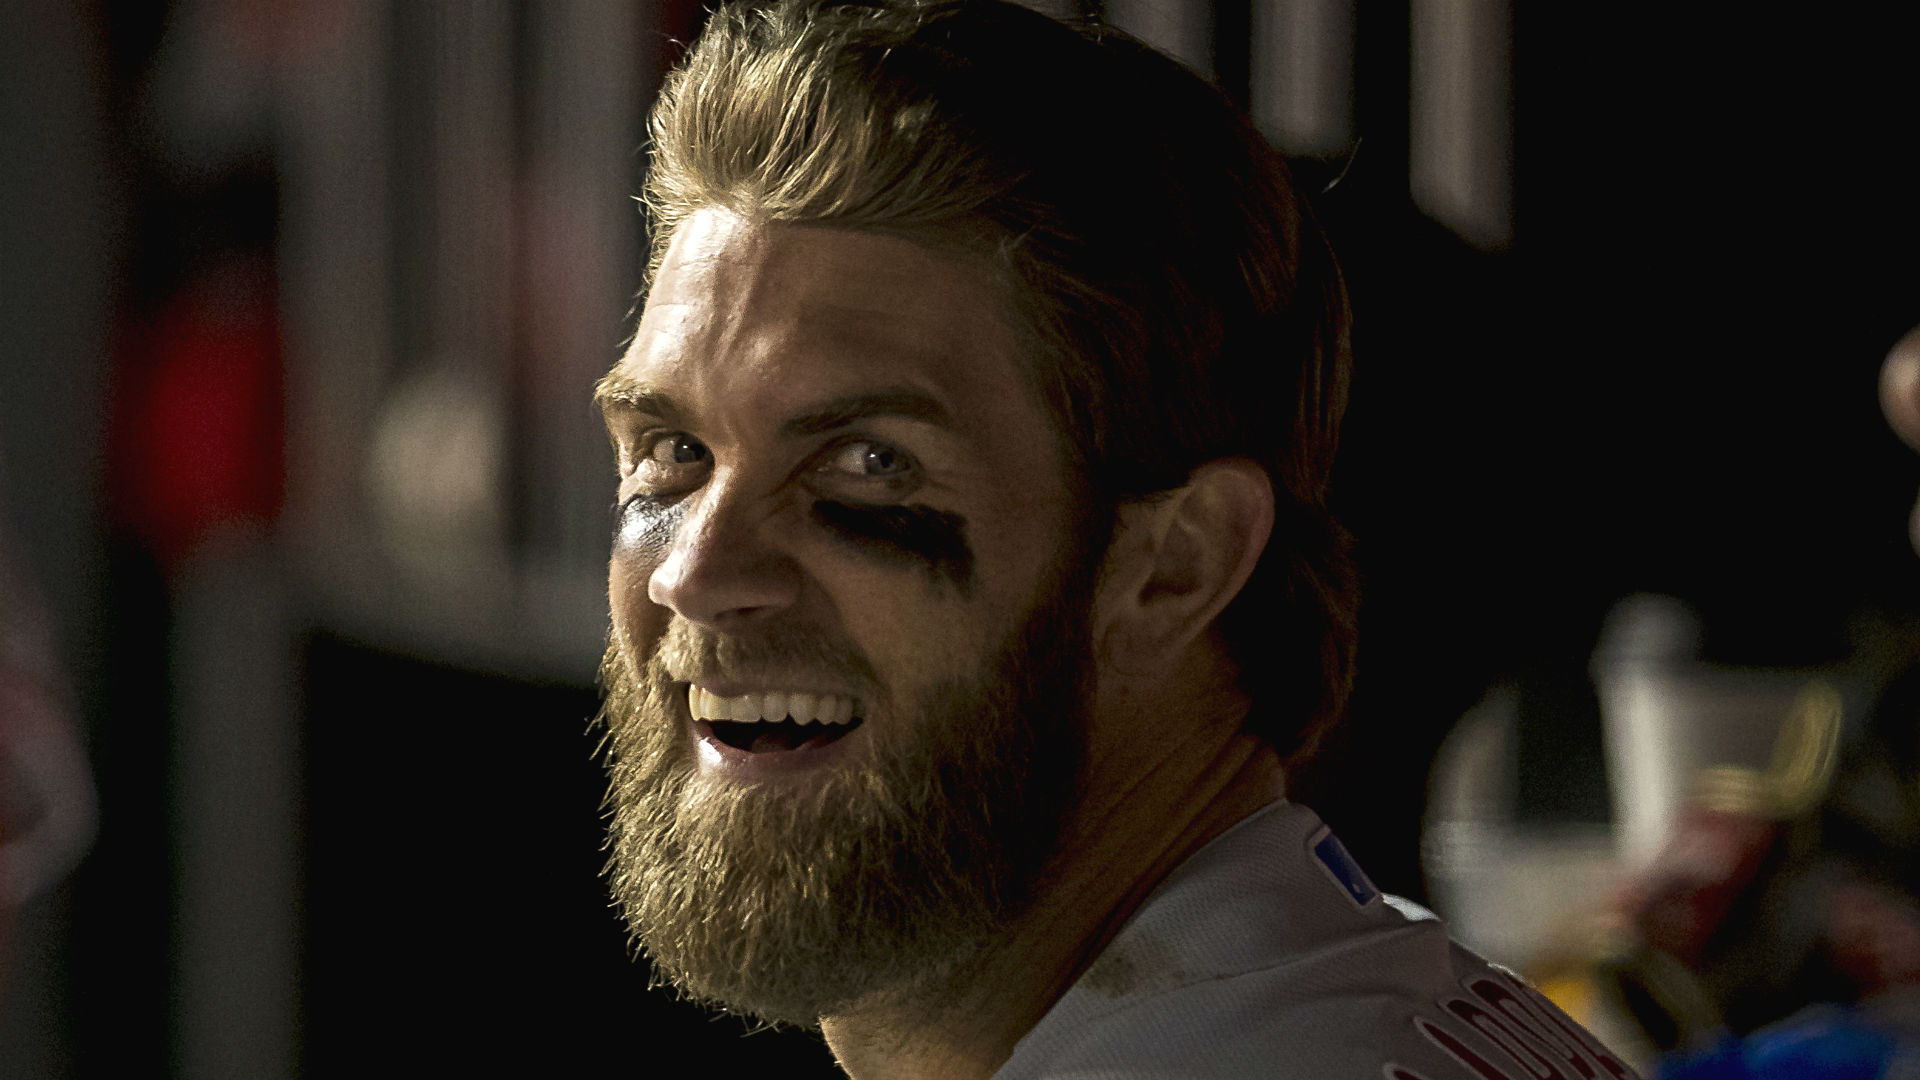 Seriously, celebrate the Nationals and shut up about Bryce Harper already